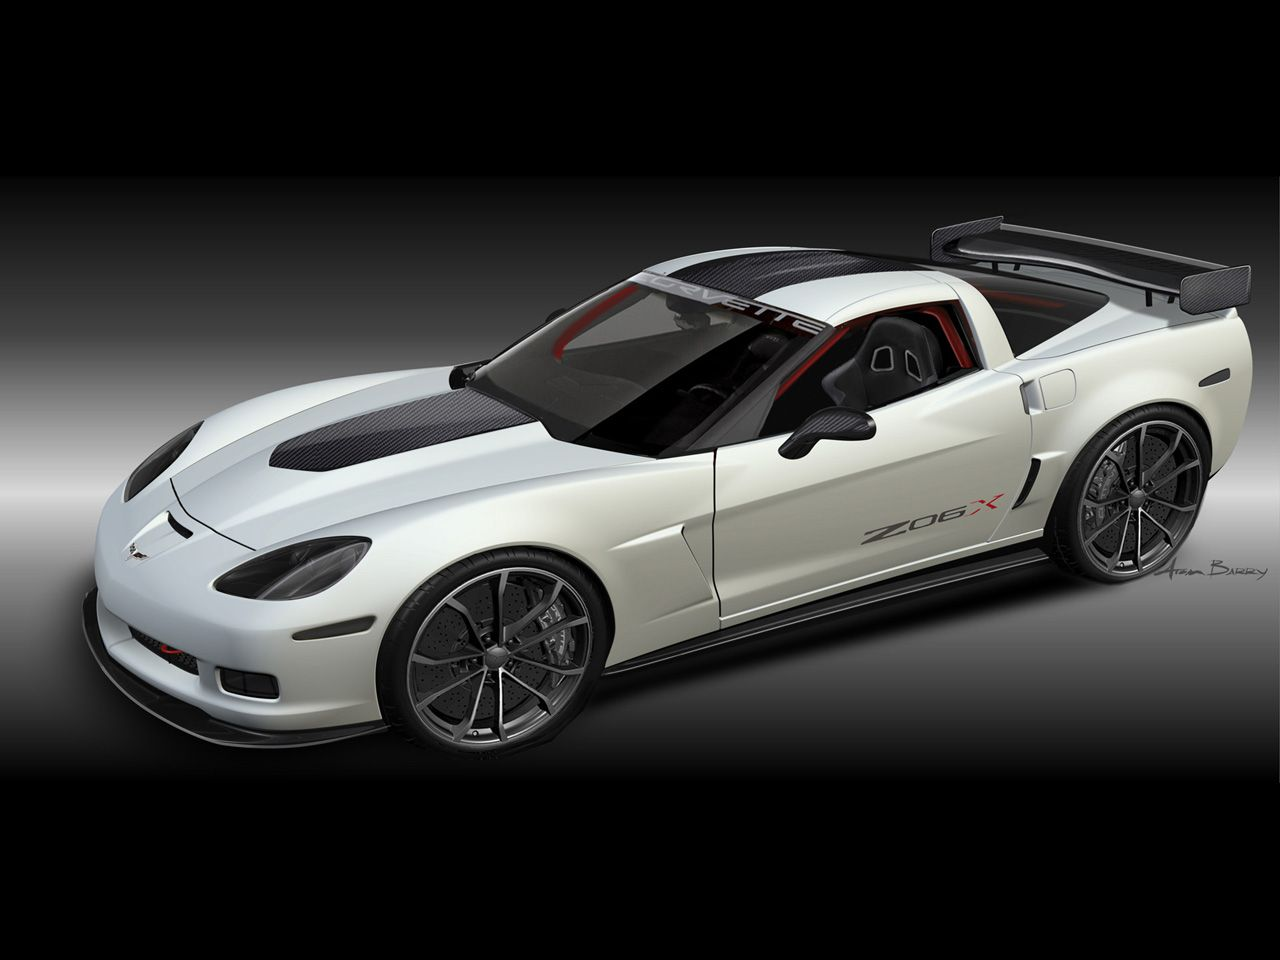 Image detail for Next Generation Corvette C7 Stingray